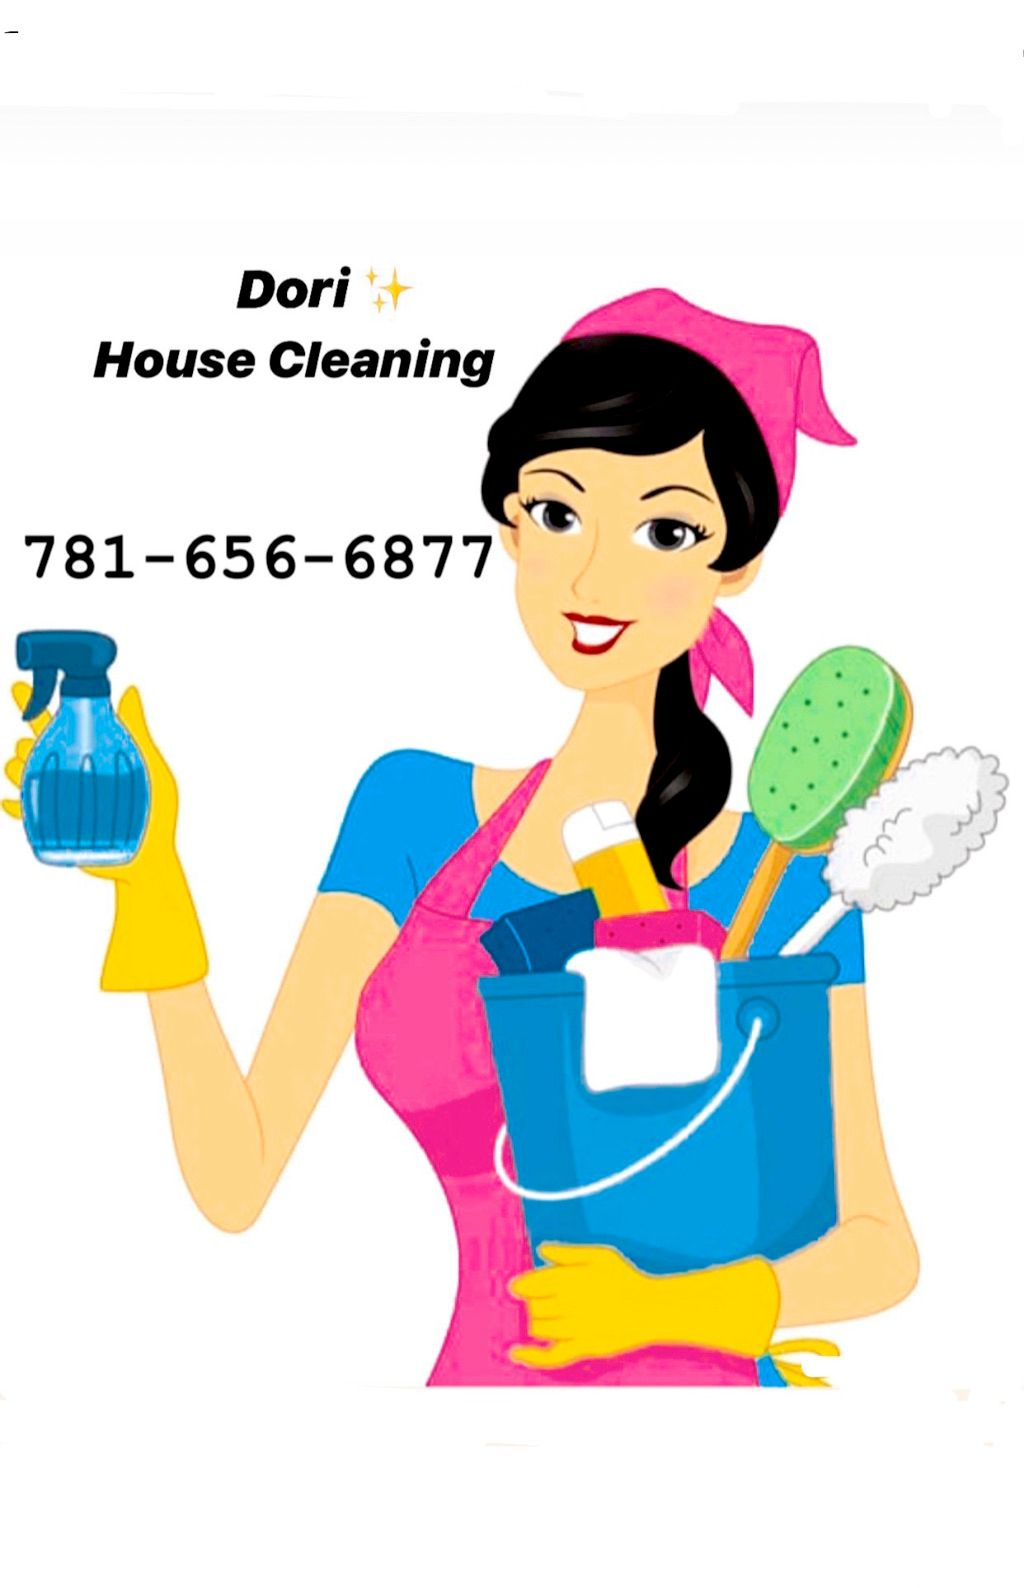 Dori House Cleaning